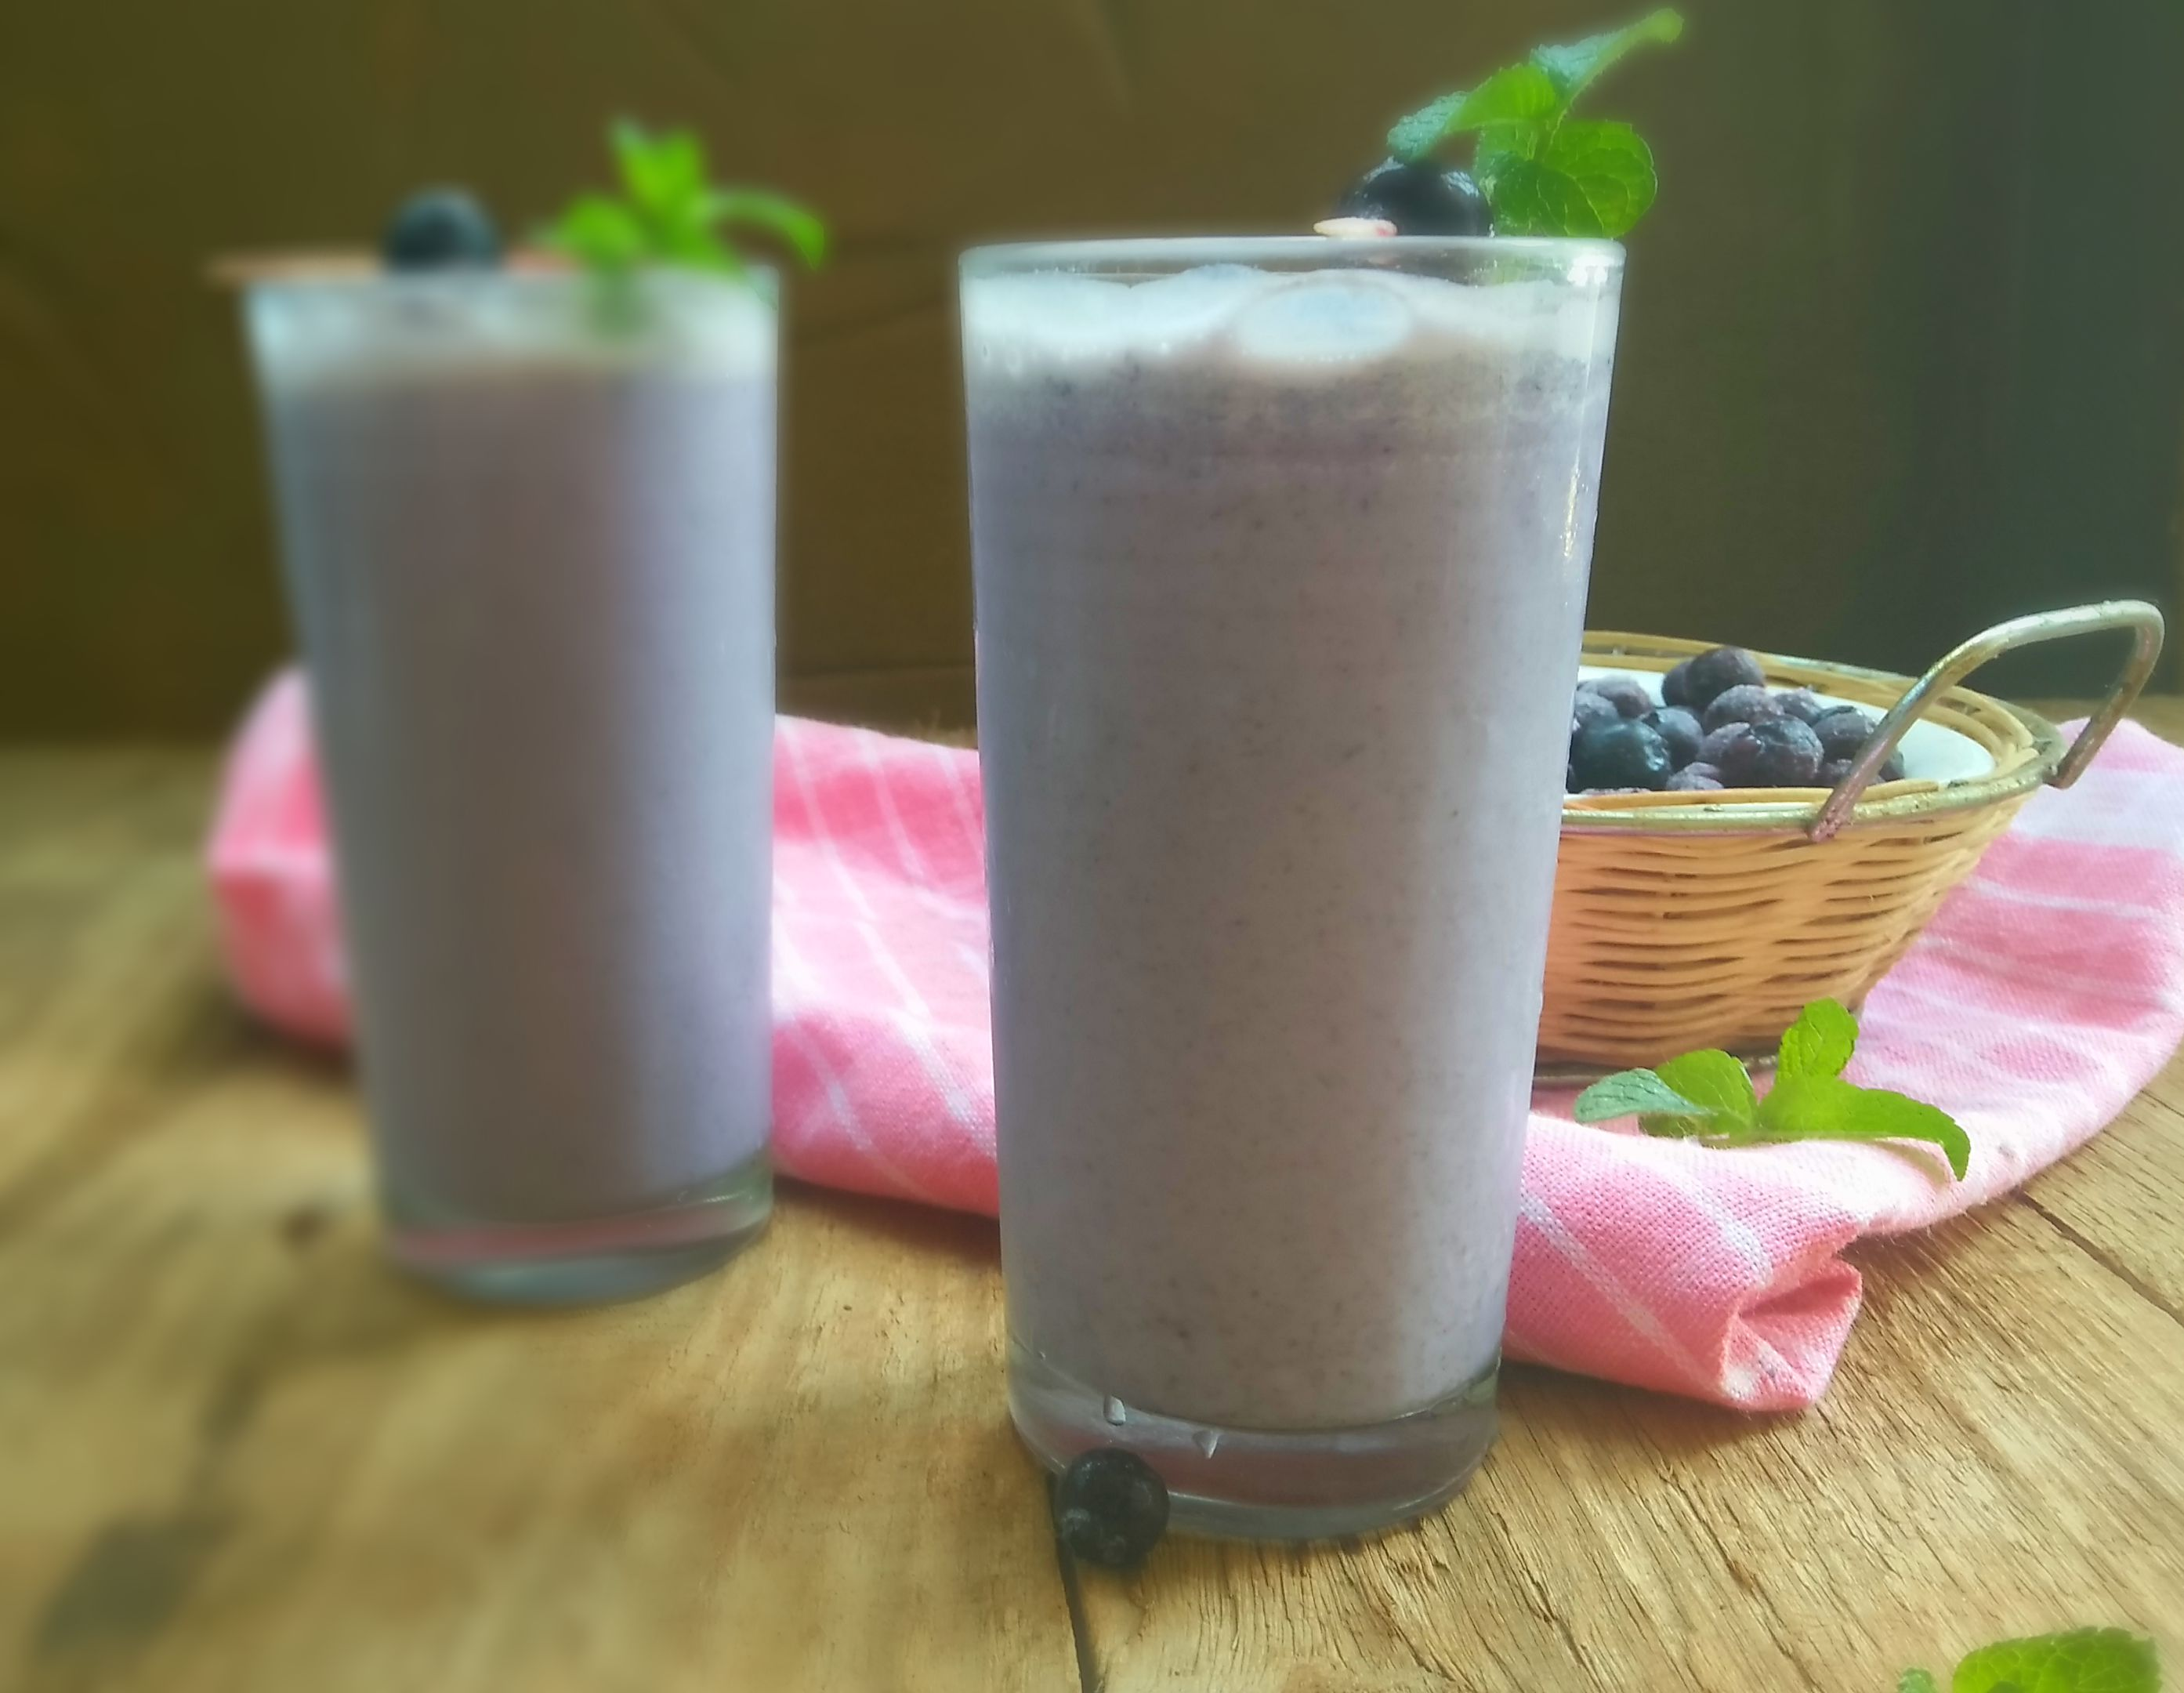 Blueberry Bran Smoothie